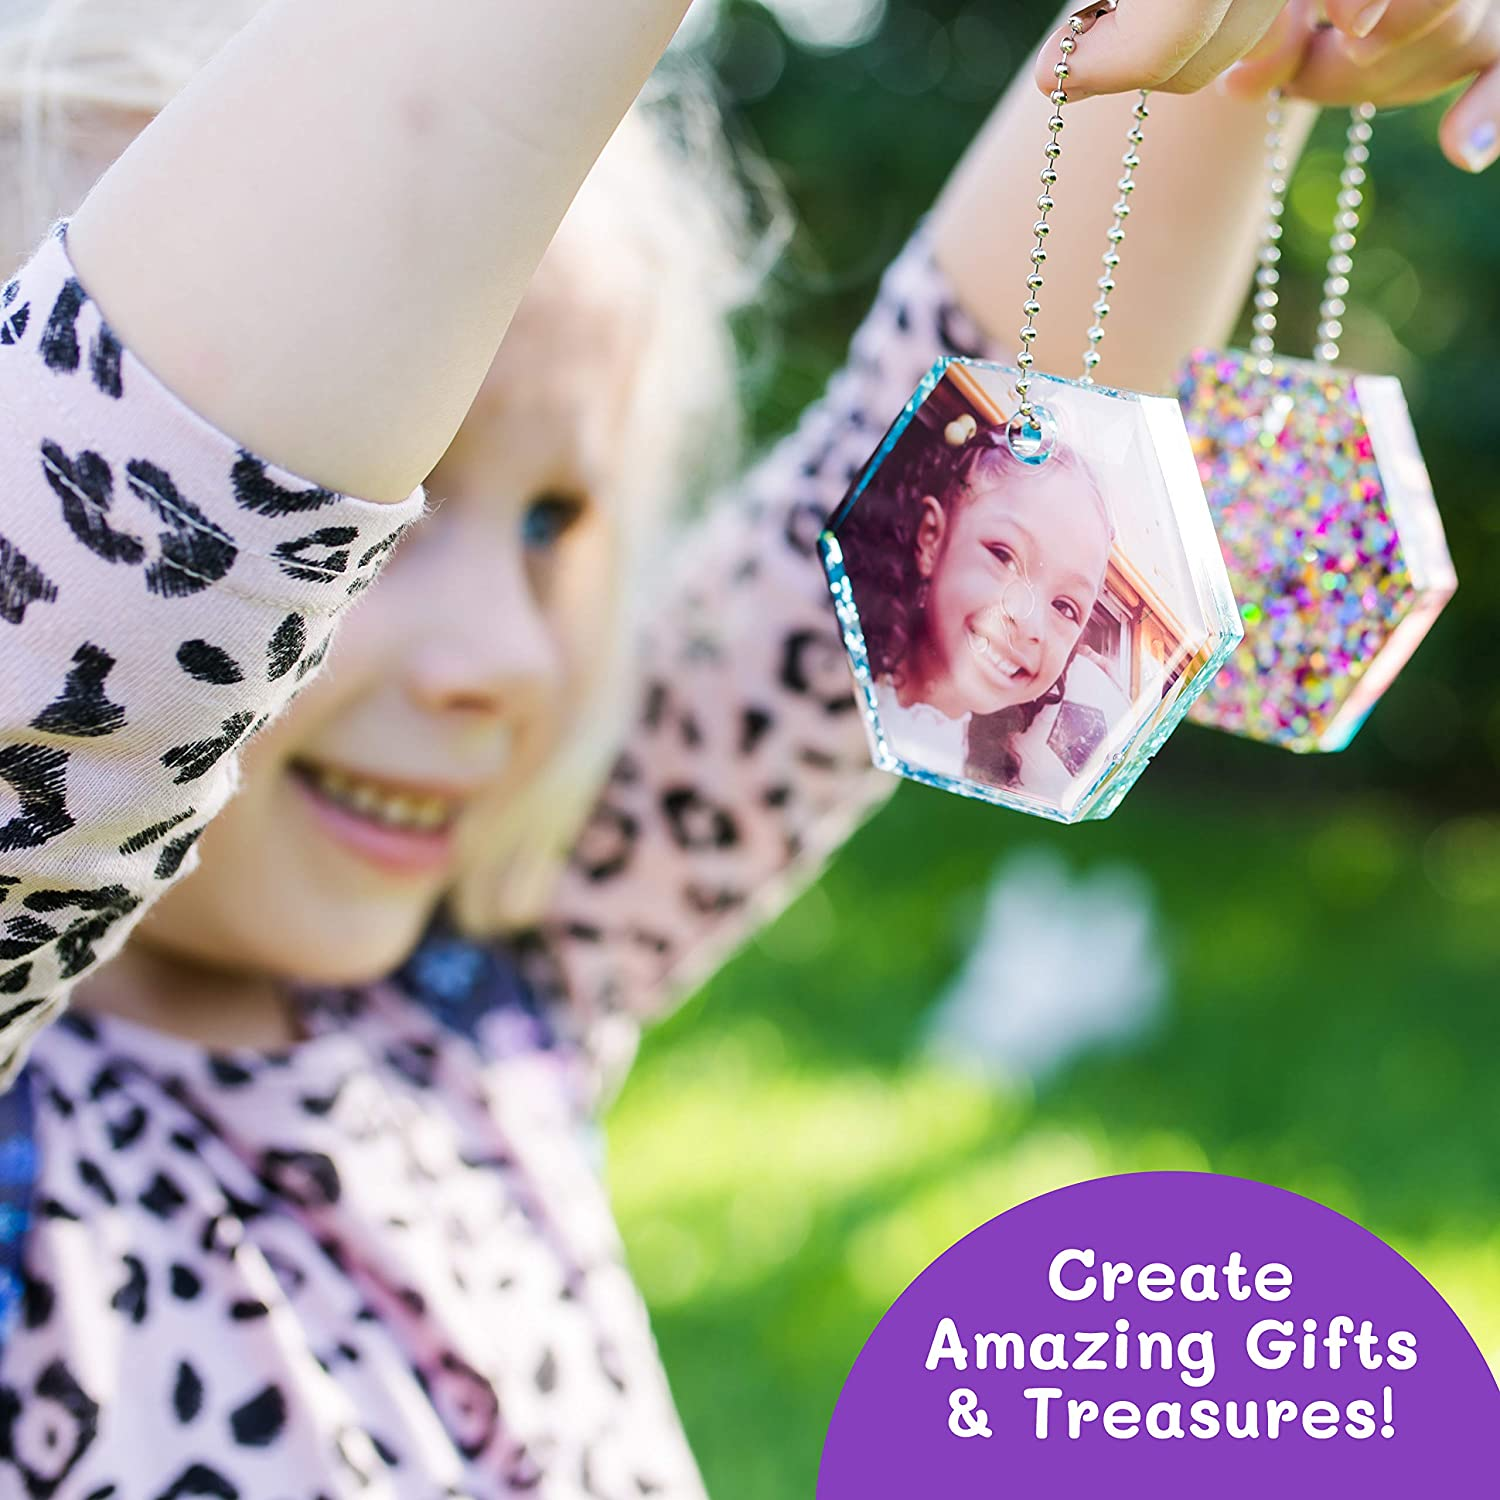 resin kit mold package kids activity with glitters for holding a photo